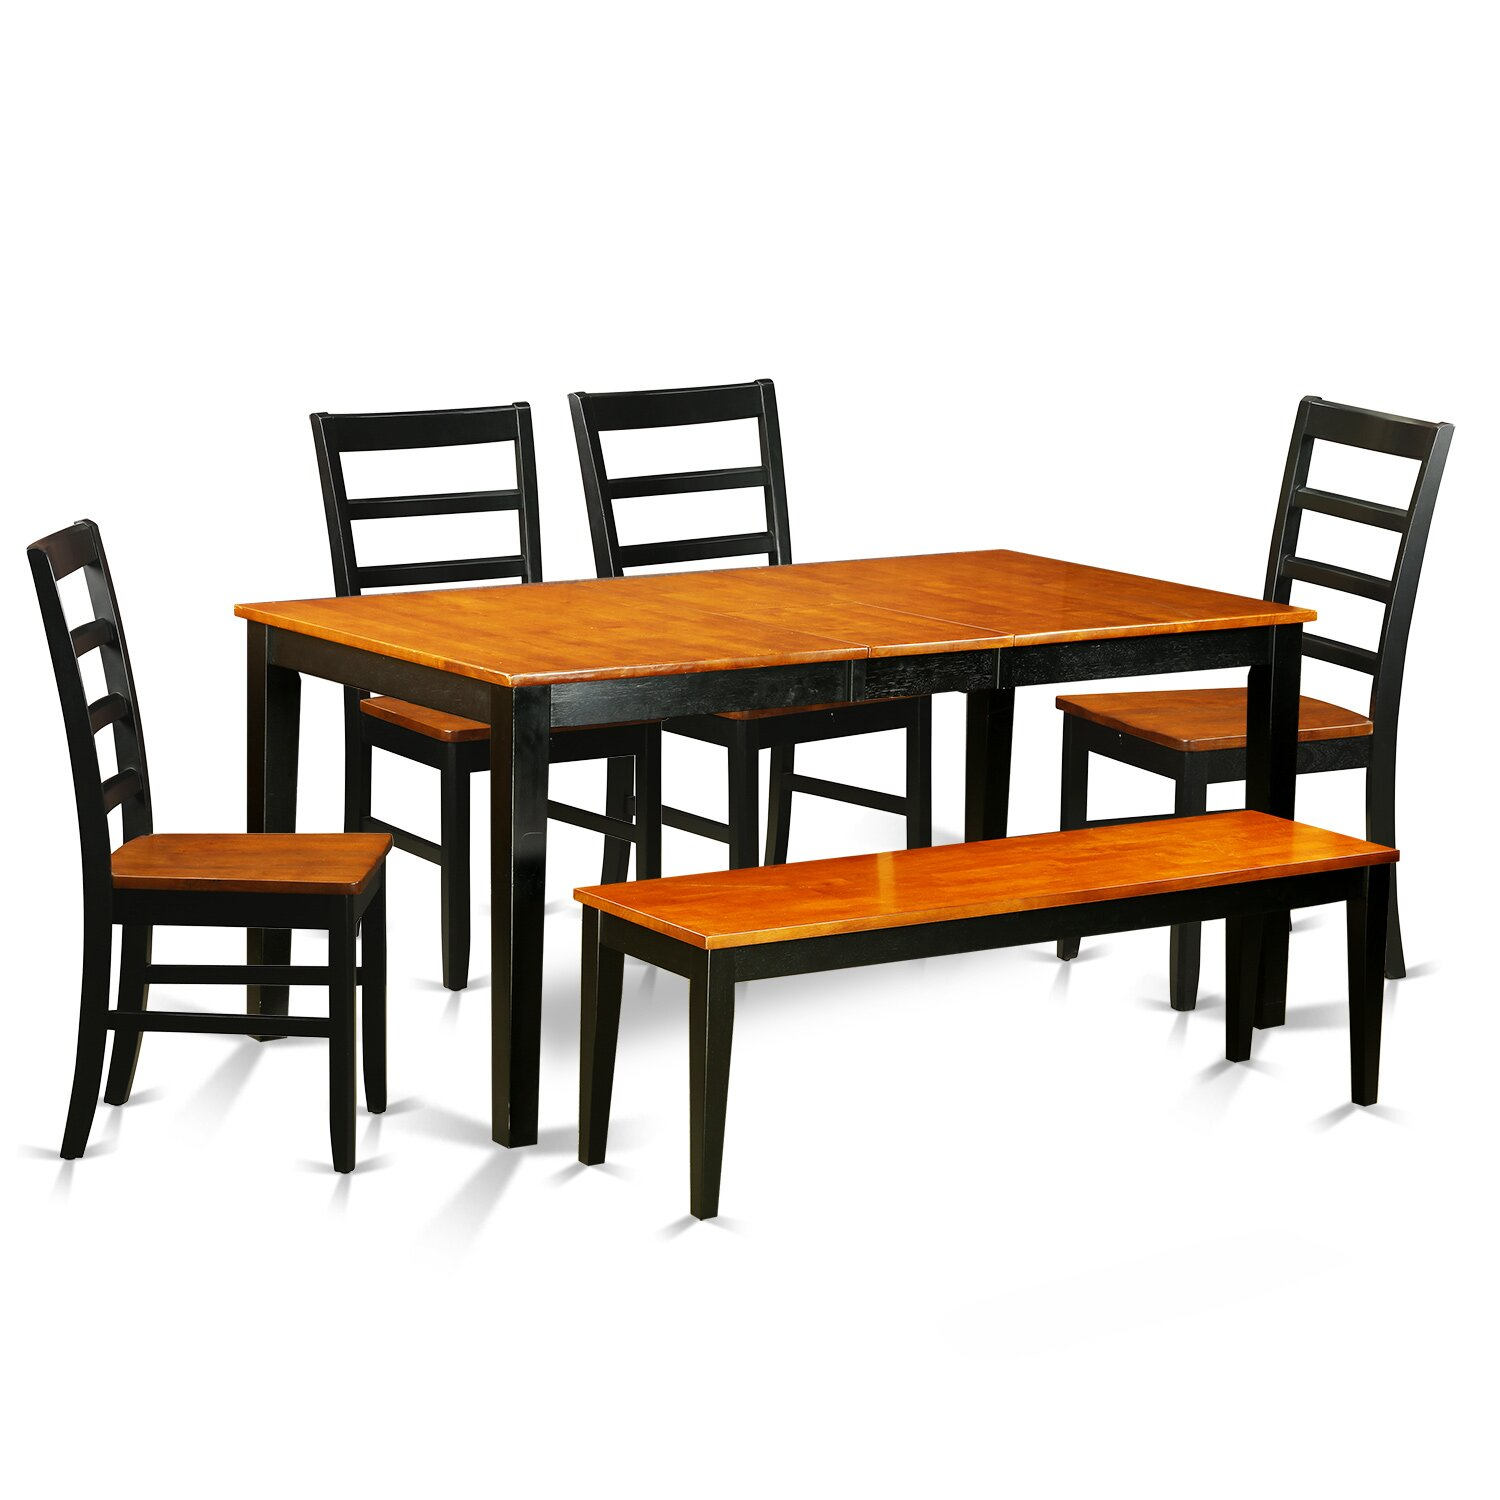 6 Piece Dining Room Set with Bench kitchen Tables and 4 Solid Wood Dining Chairs Plus Bench NIPF6 BCH EWFR